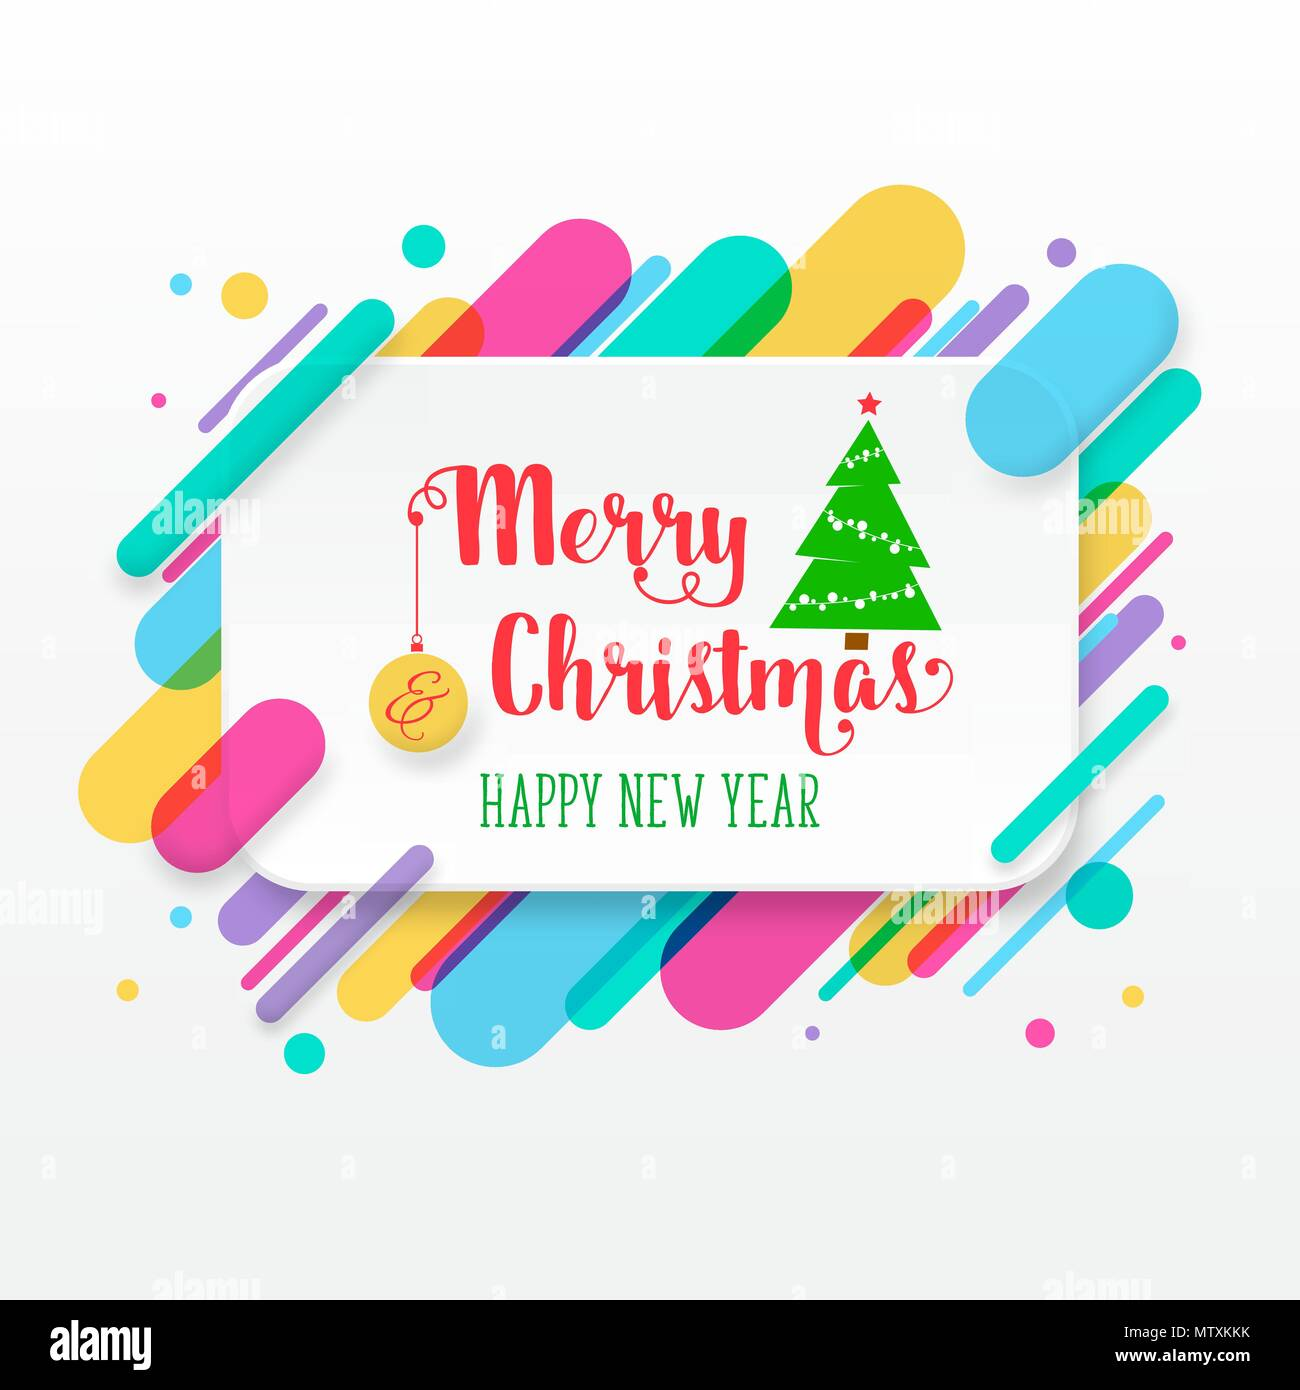 Merry christmas and happy new year greeting card with abstract merry christmas and happy new year greeting card with abstract colored rounded shapes lines in diagonal rhythm for greeting card poster brochure or m4hsunfo